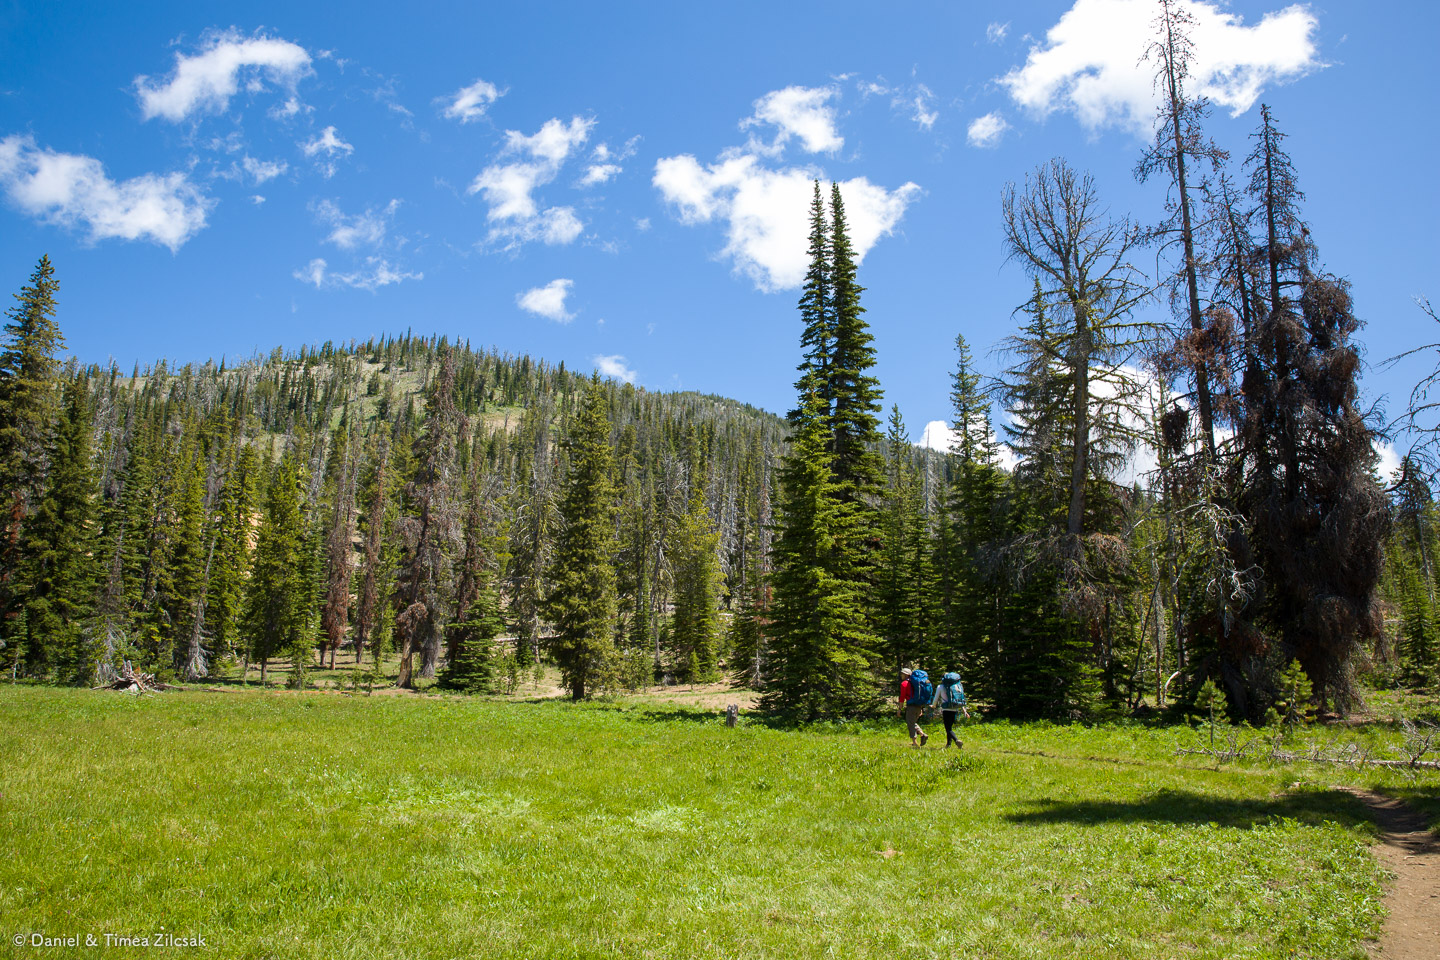 The meadows before Navaho Pass, offering plenty of camp spots for backpackers